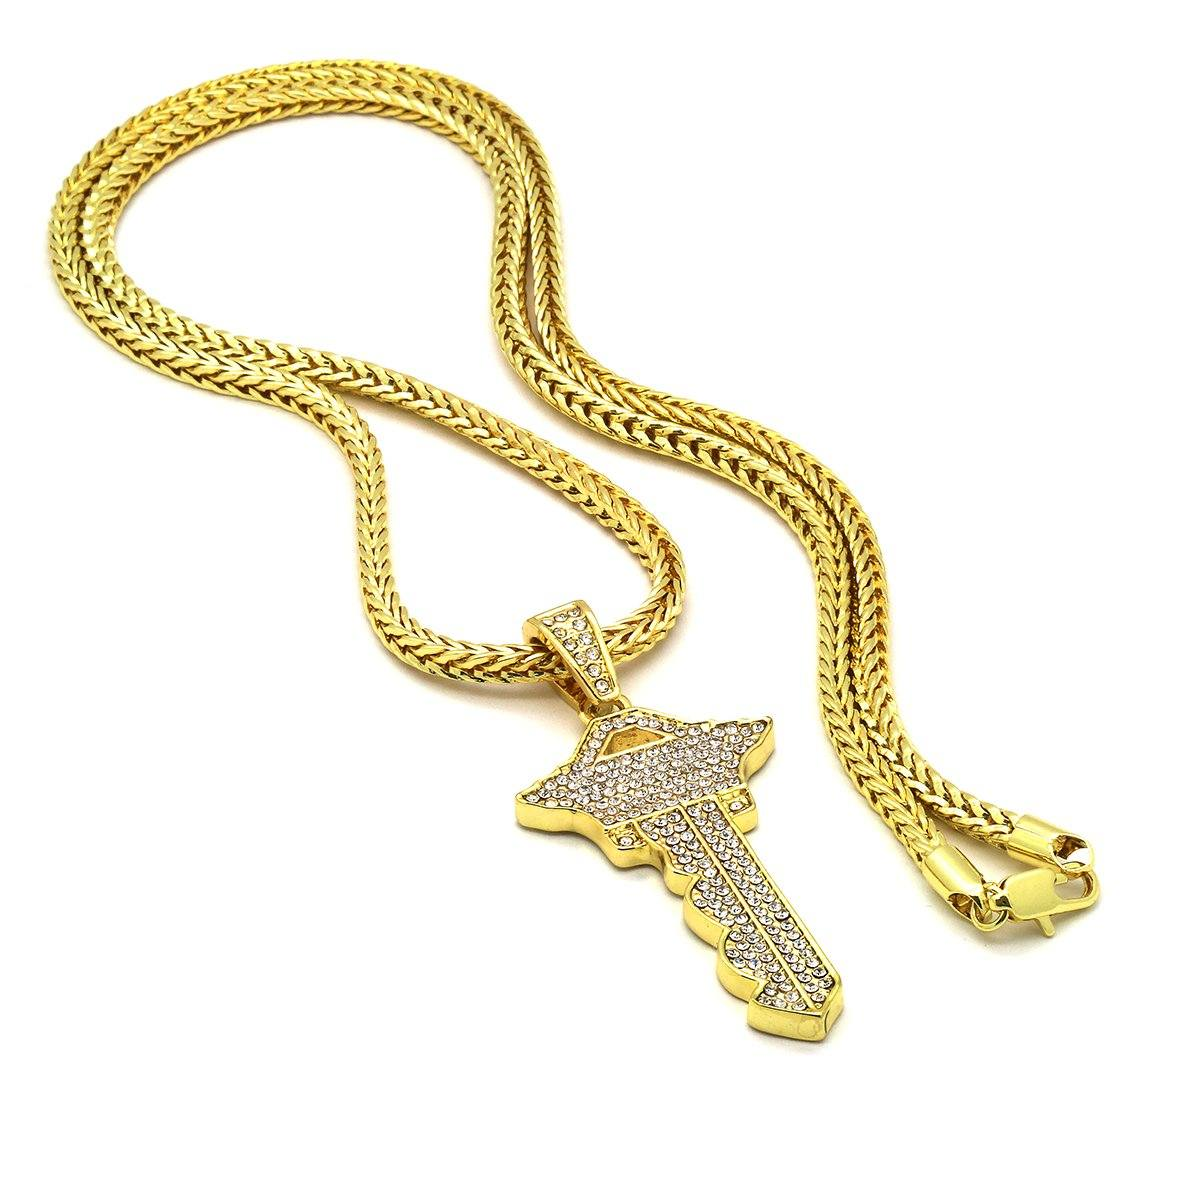 Gold Filled Key Pendant with Franco Chain